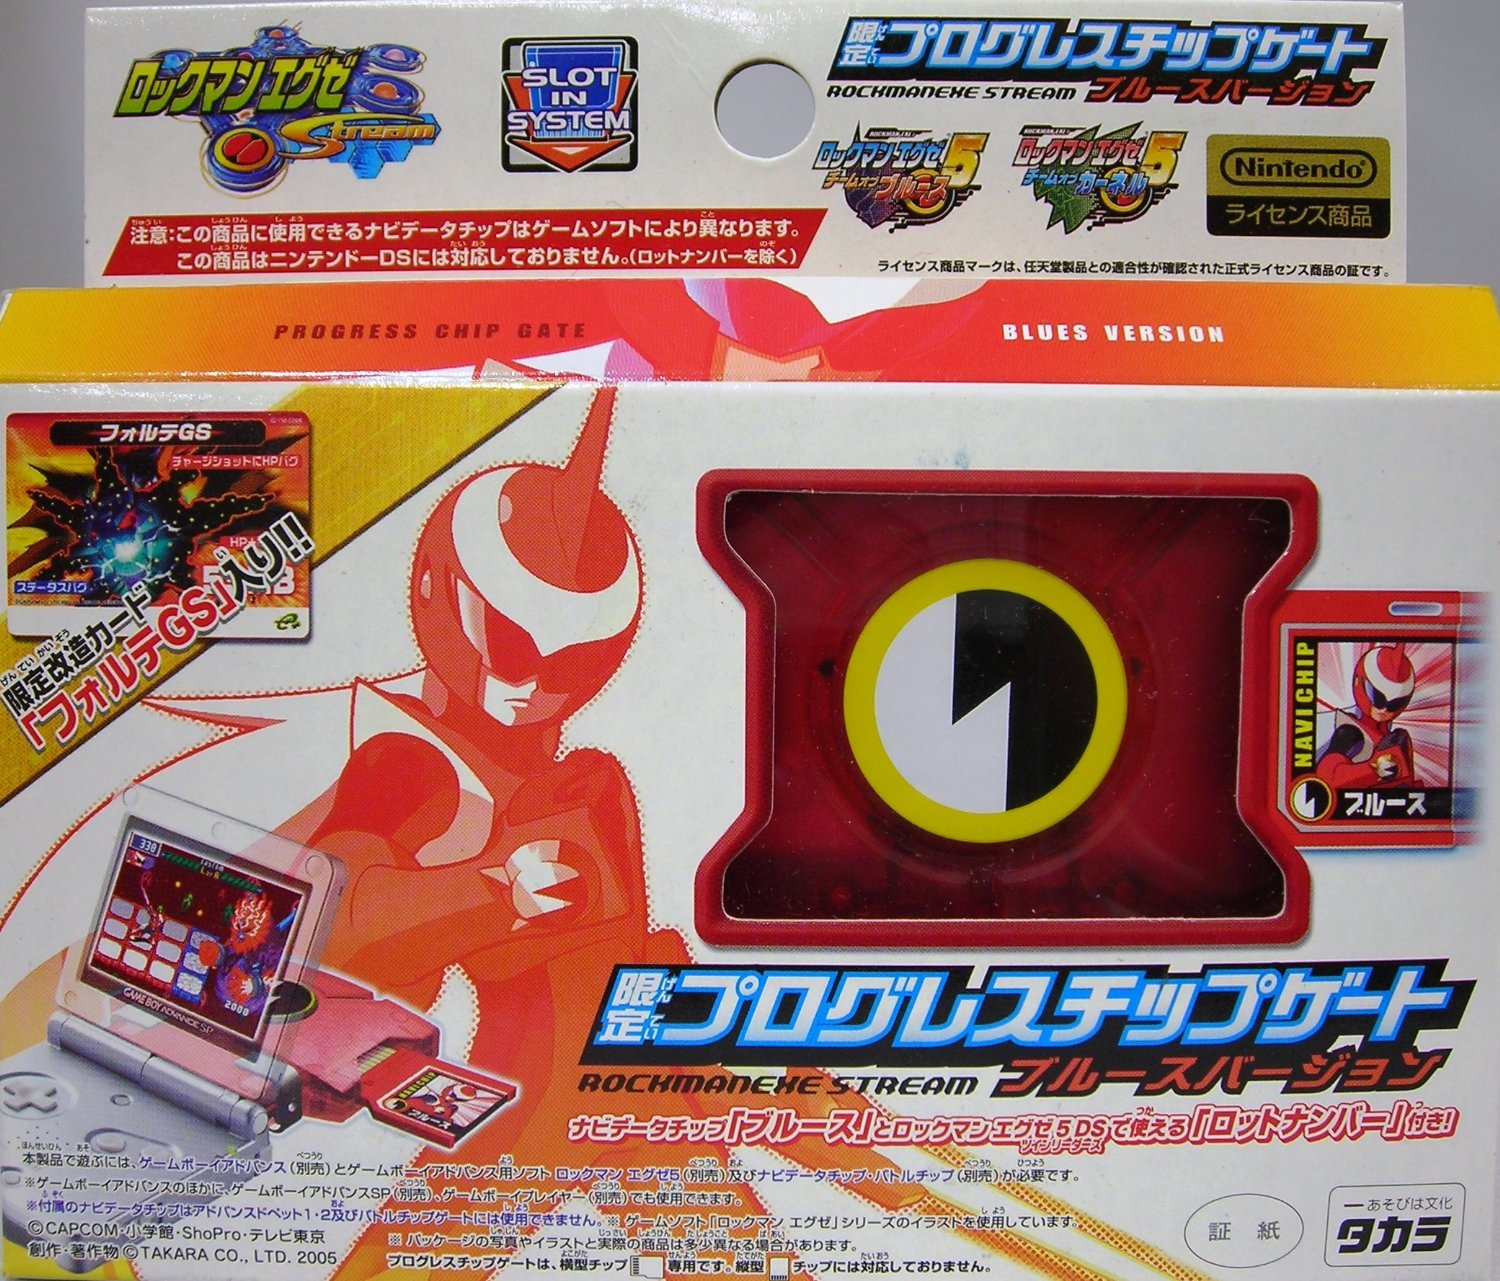 Rockman exe stream section toys n mission collectible for Mission exe